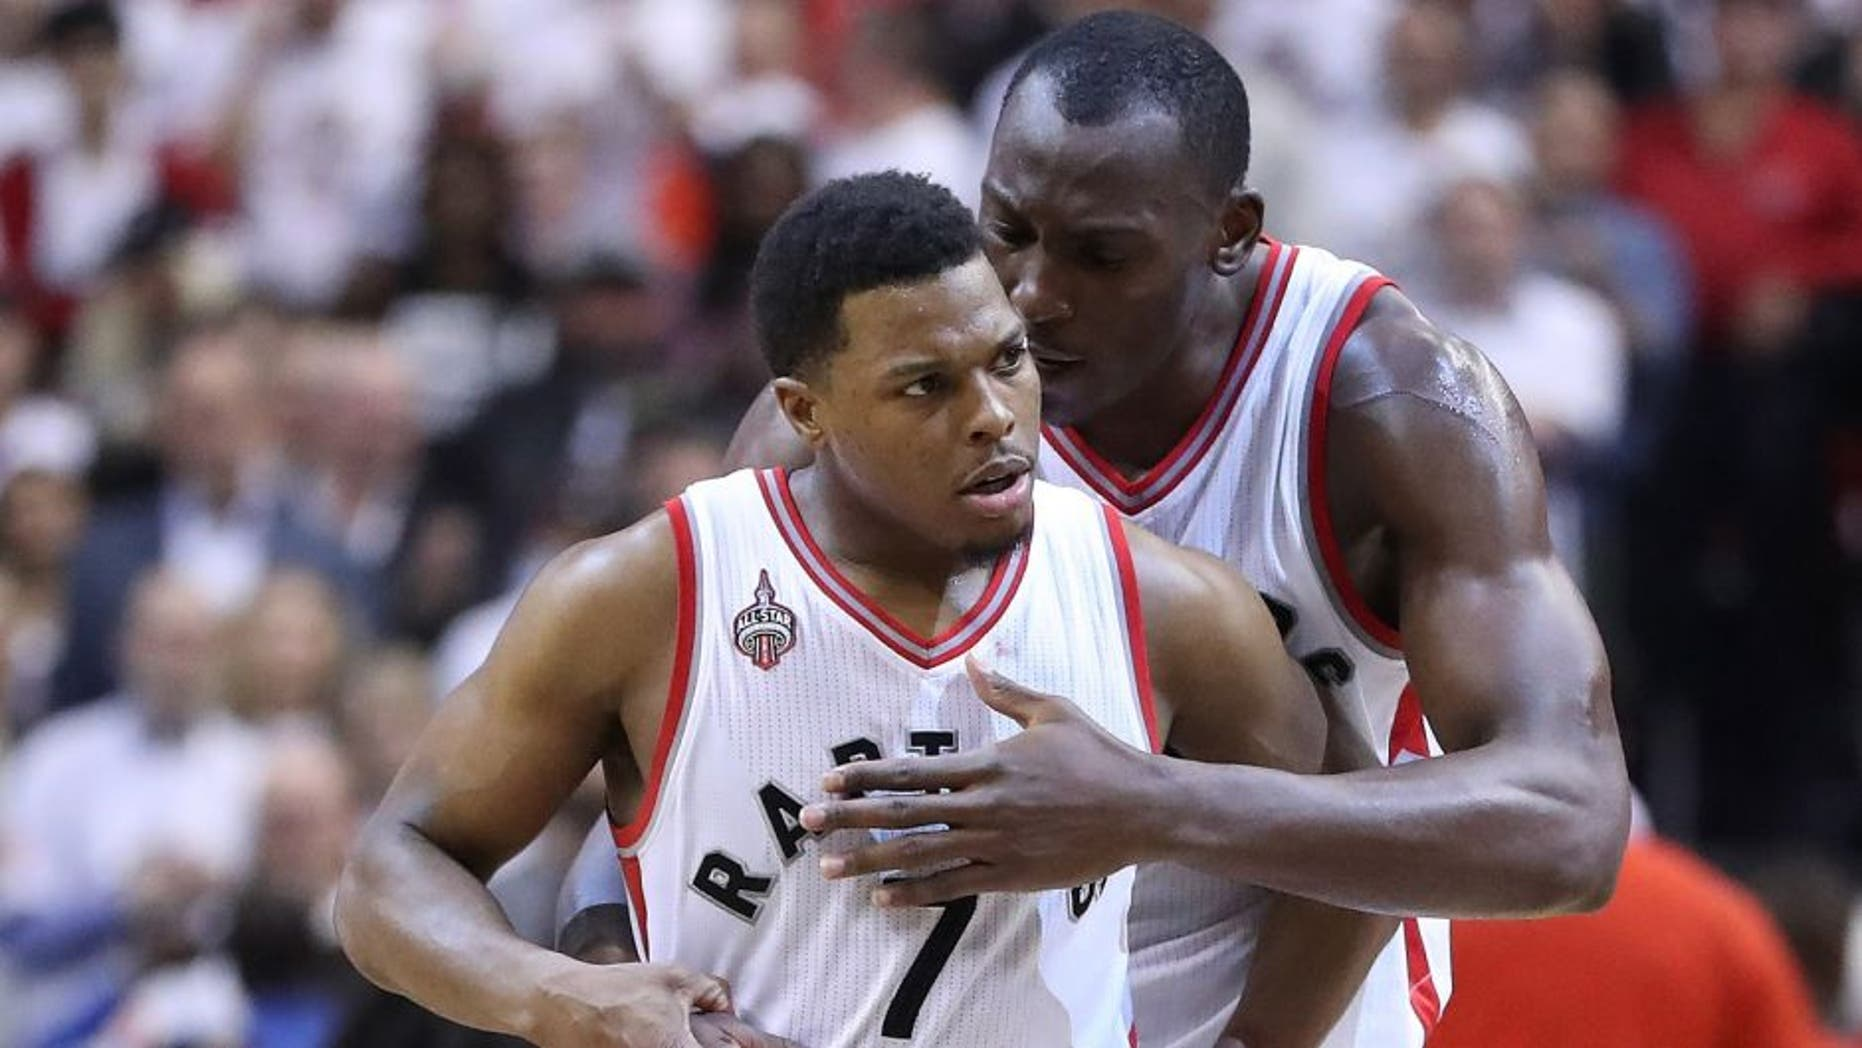 TORONTO, ON- MAY 11: Bismack Biyombo congratulates Kyle Lowry after he hit a key basket late in the game as the Toronto Raptors beat the Miami Heat in game five 99-91 of their Eastern Conference Semifinal at the Air Canada Centre in Toronto. May 11, 2016. (Steve Russell/Toronto Star via Getty Images)